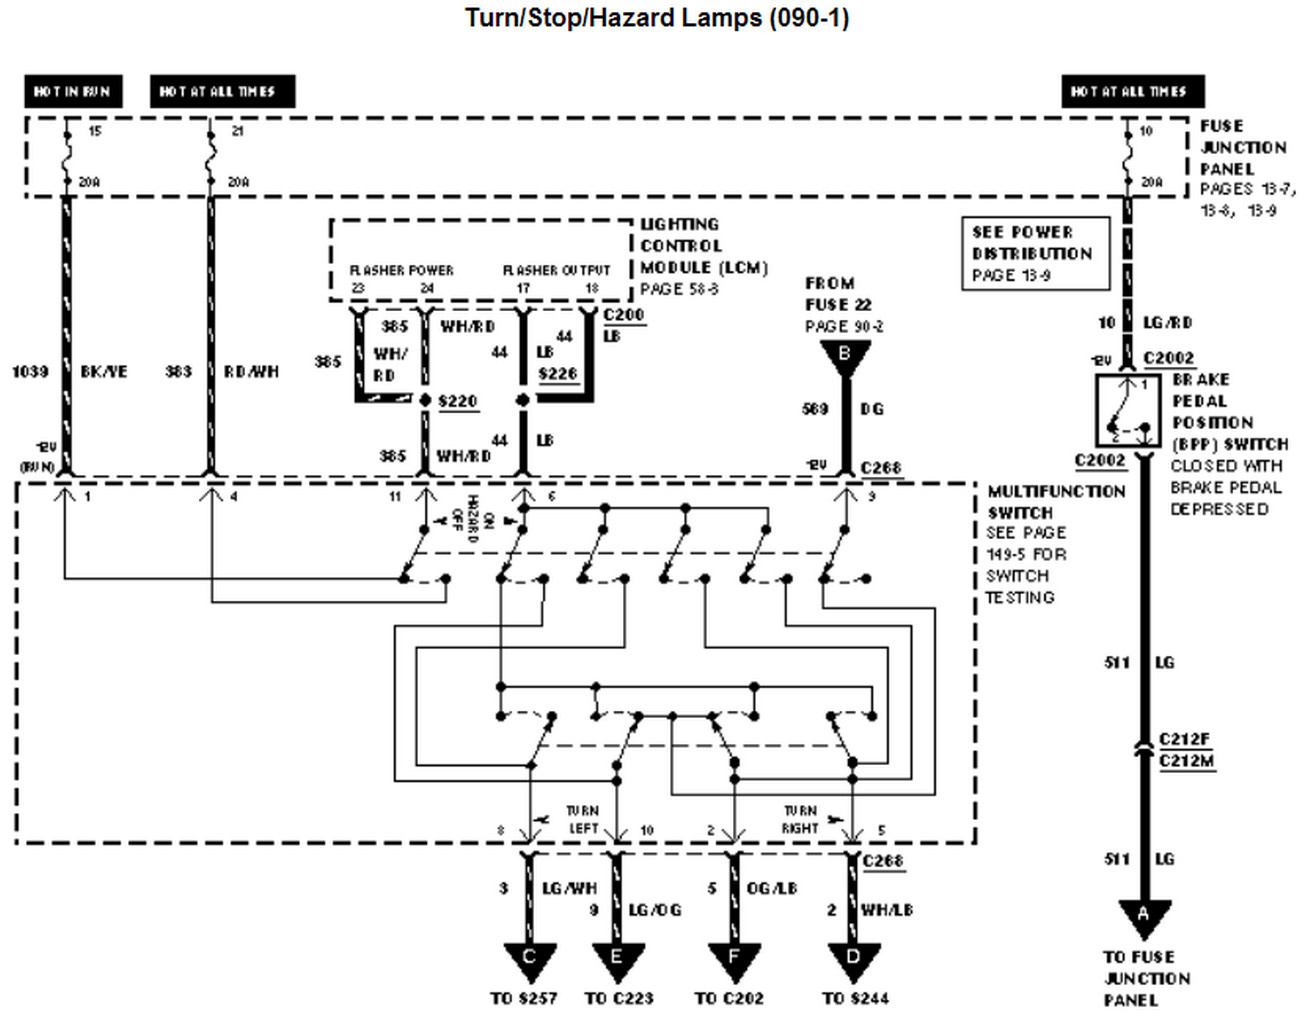 hight resolution of 2000 lincoln continental engine diagram page 2 schema wiring lincoln town car questions tail lights